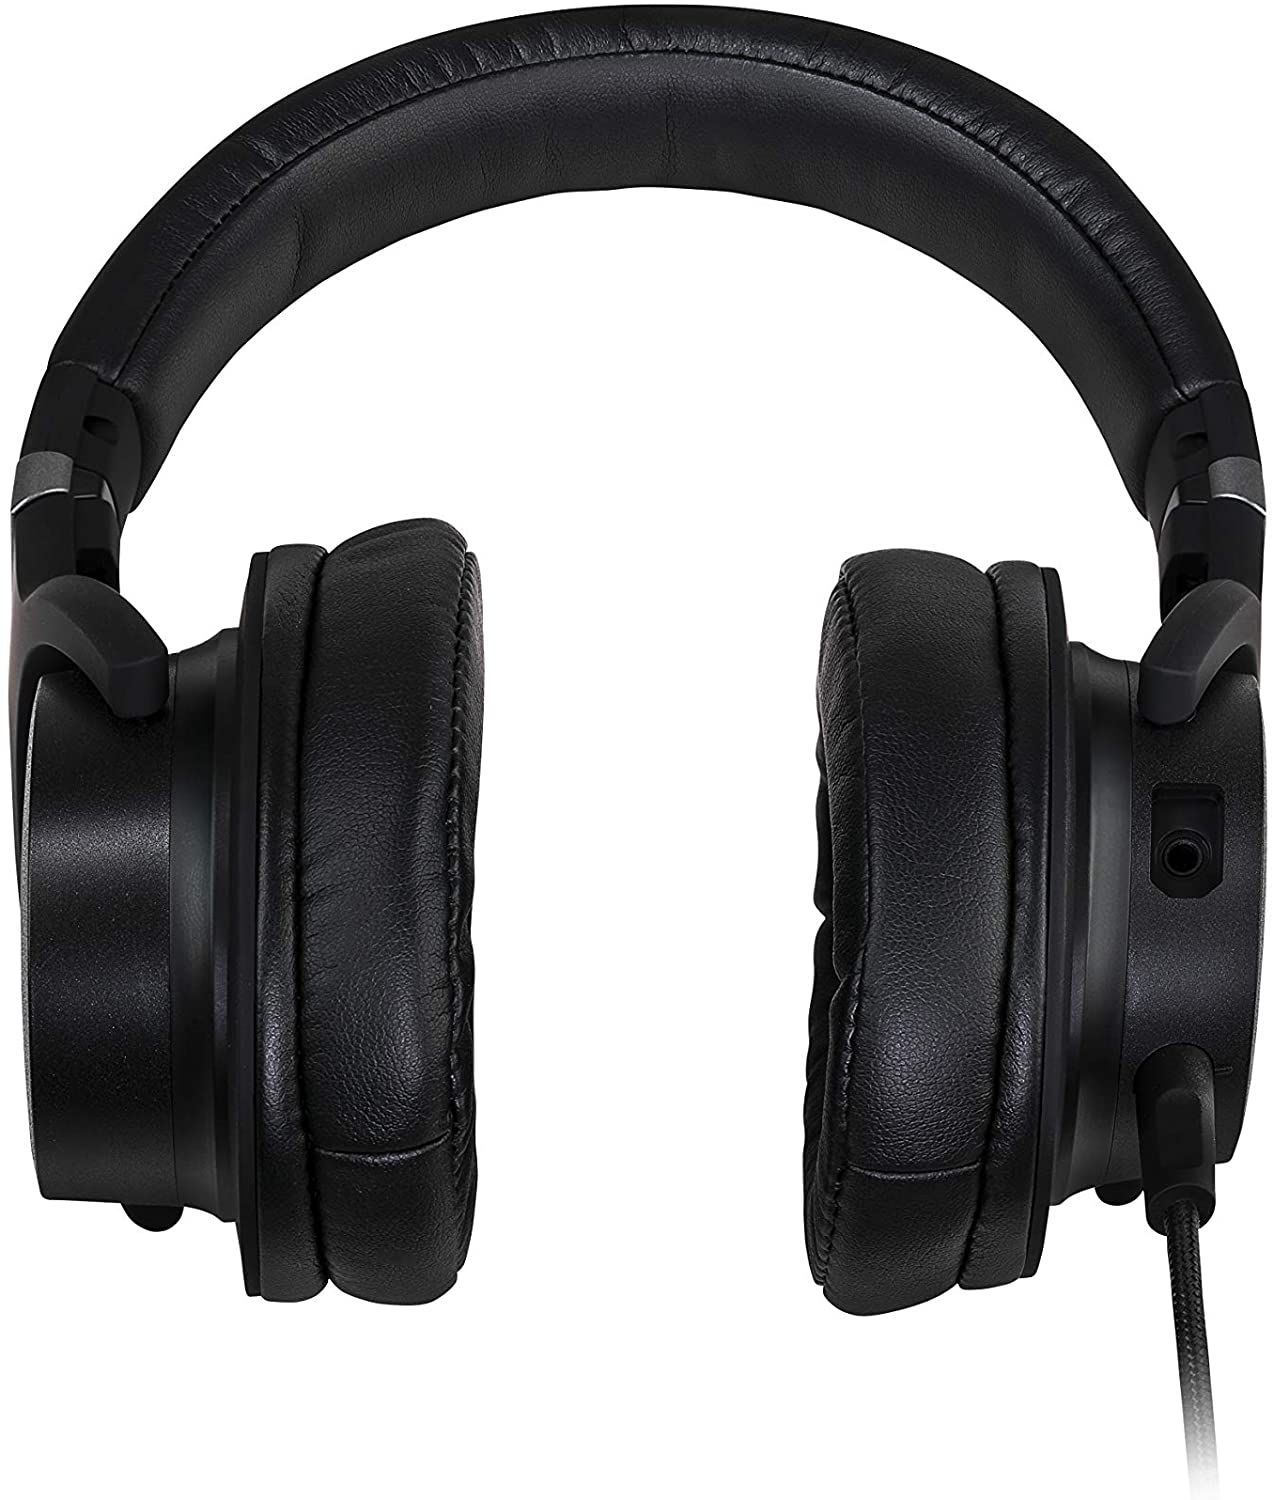 Cooler Master MH630 Gaming Headset with Hi-Fi Sound, Omnidirectional Boom Mic, and PC/Console/Mobile Connectivity MH751